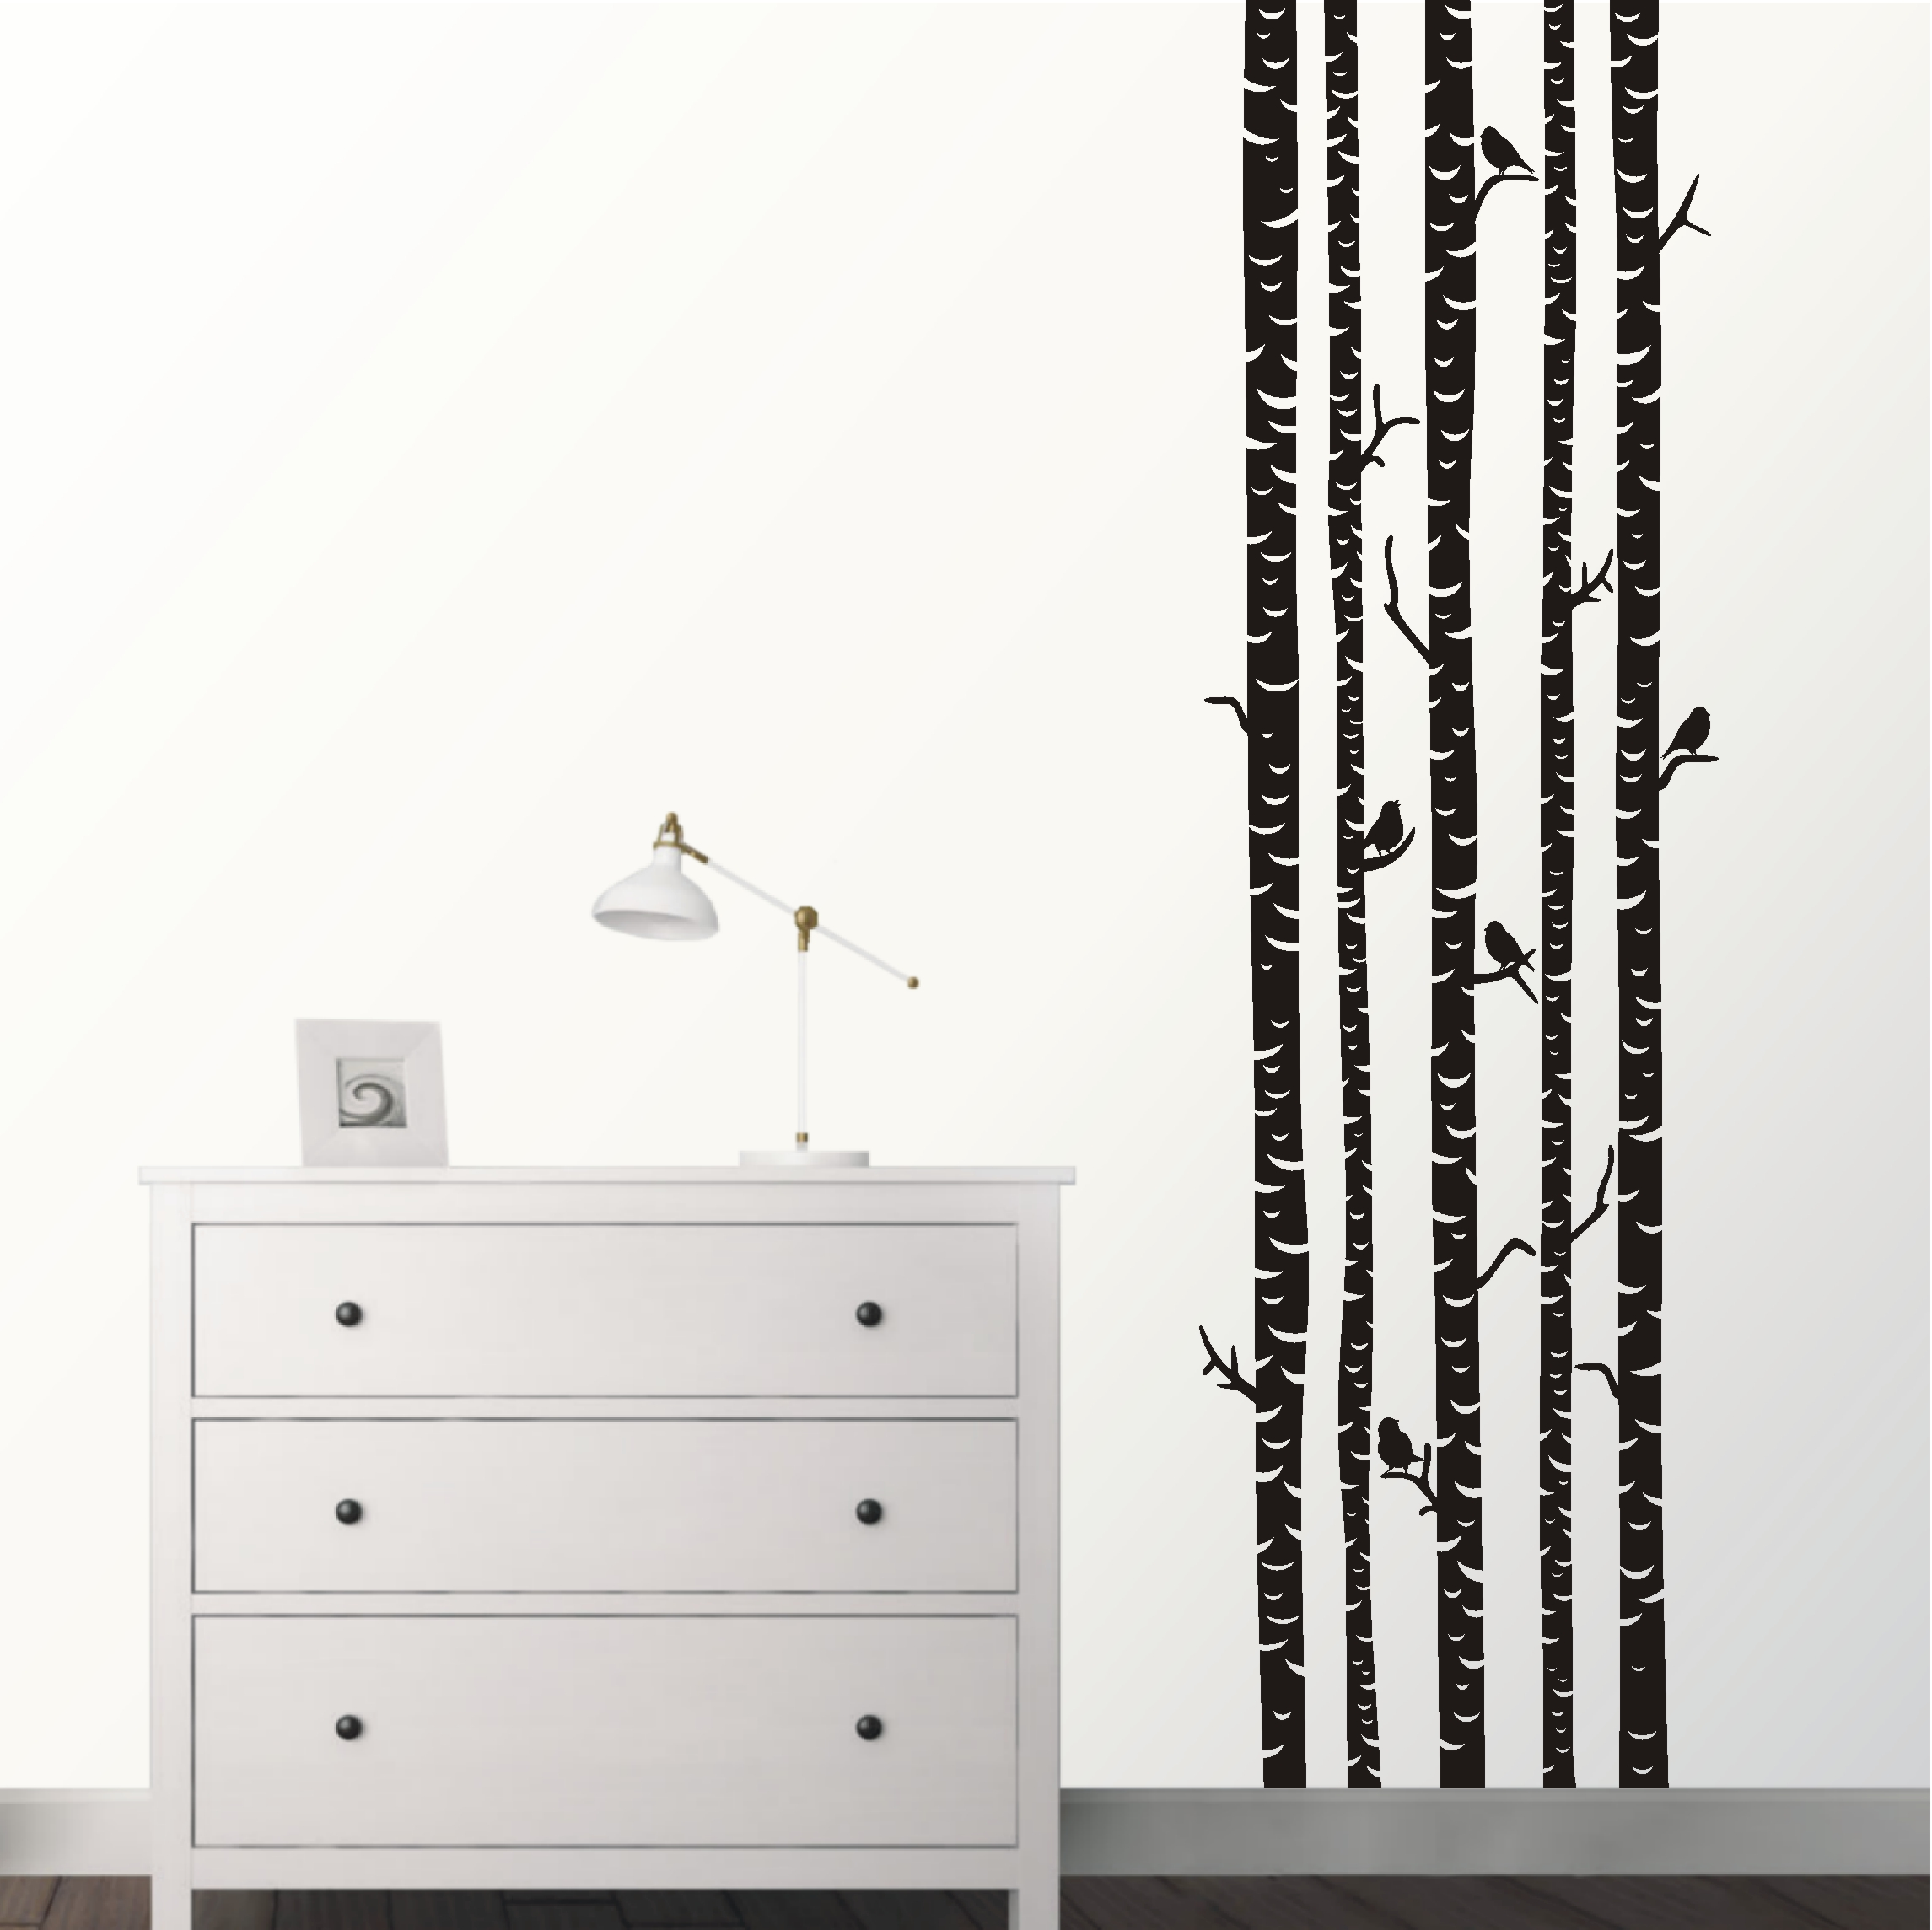 deko shop wandtattoo birkenst mme xxl deko shop. Black Bedroom Furniture Sets. Home Design Ideas